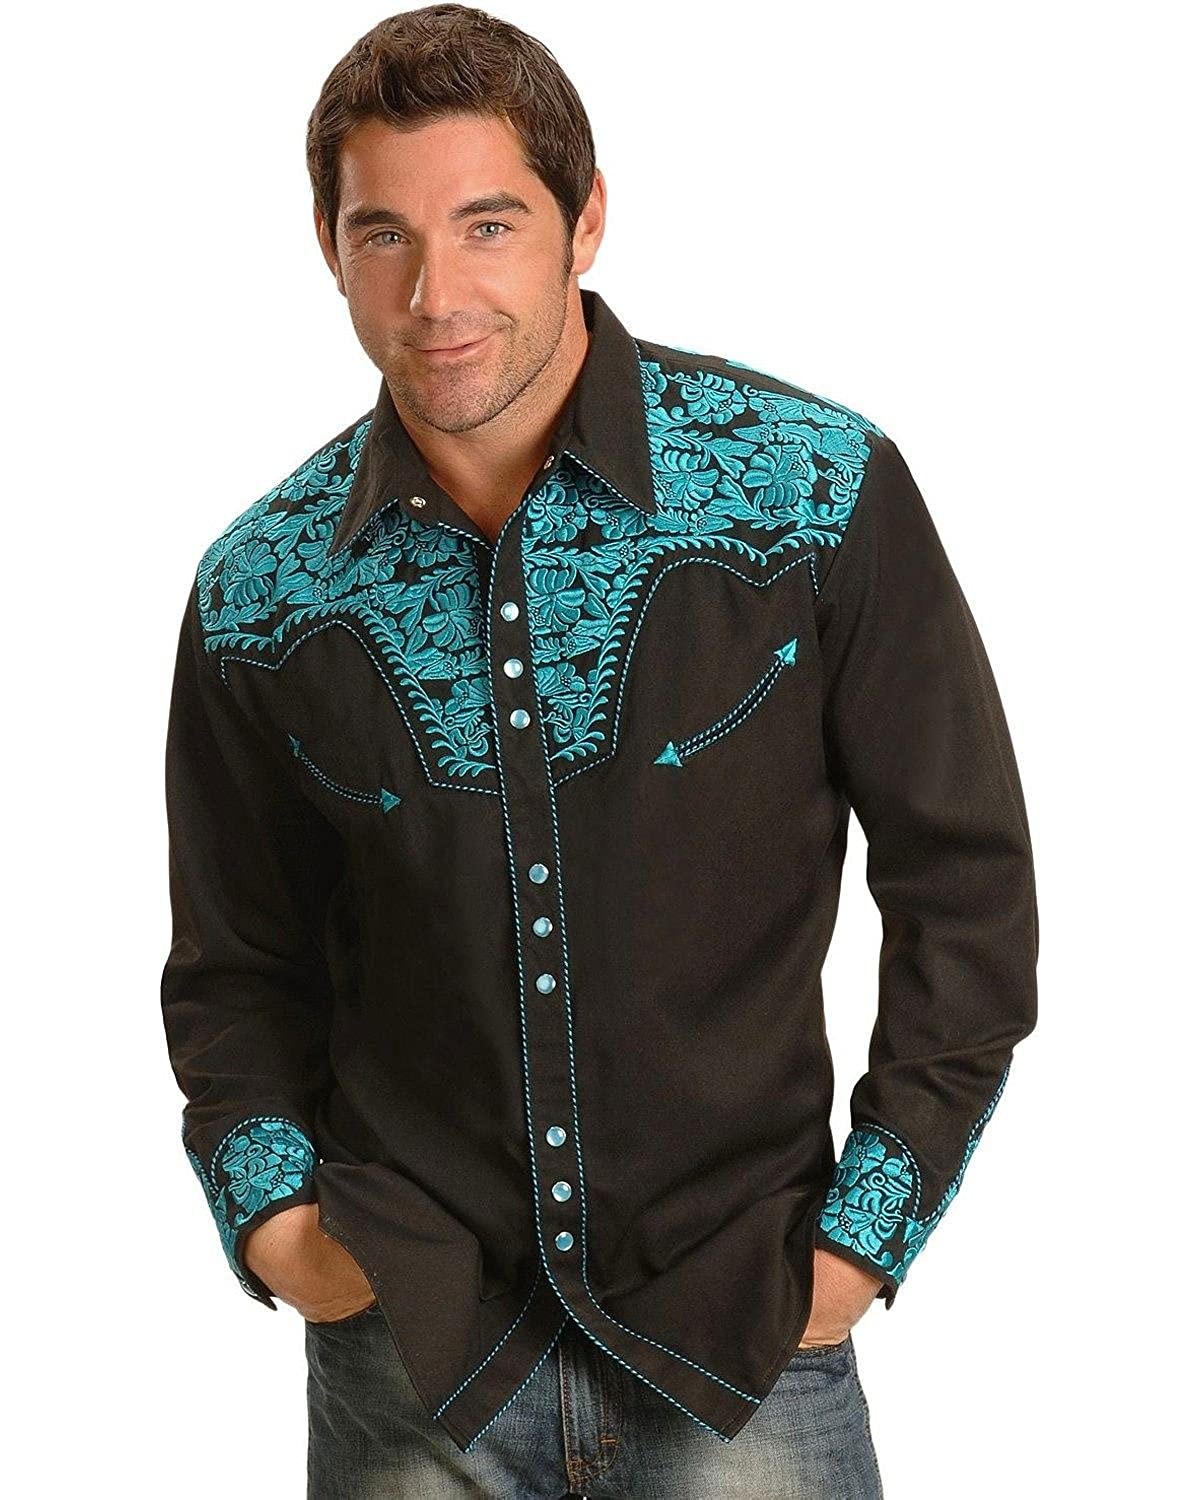 3ddf43efae Top 10 wholesale Scully Embroidered Western Shirts - Chinabrands.com